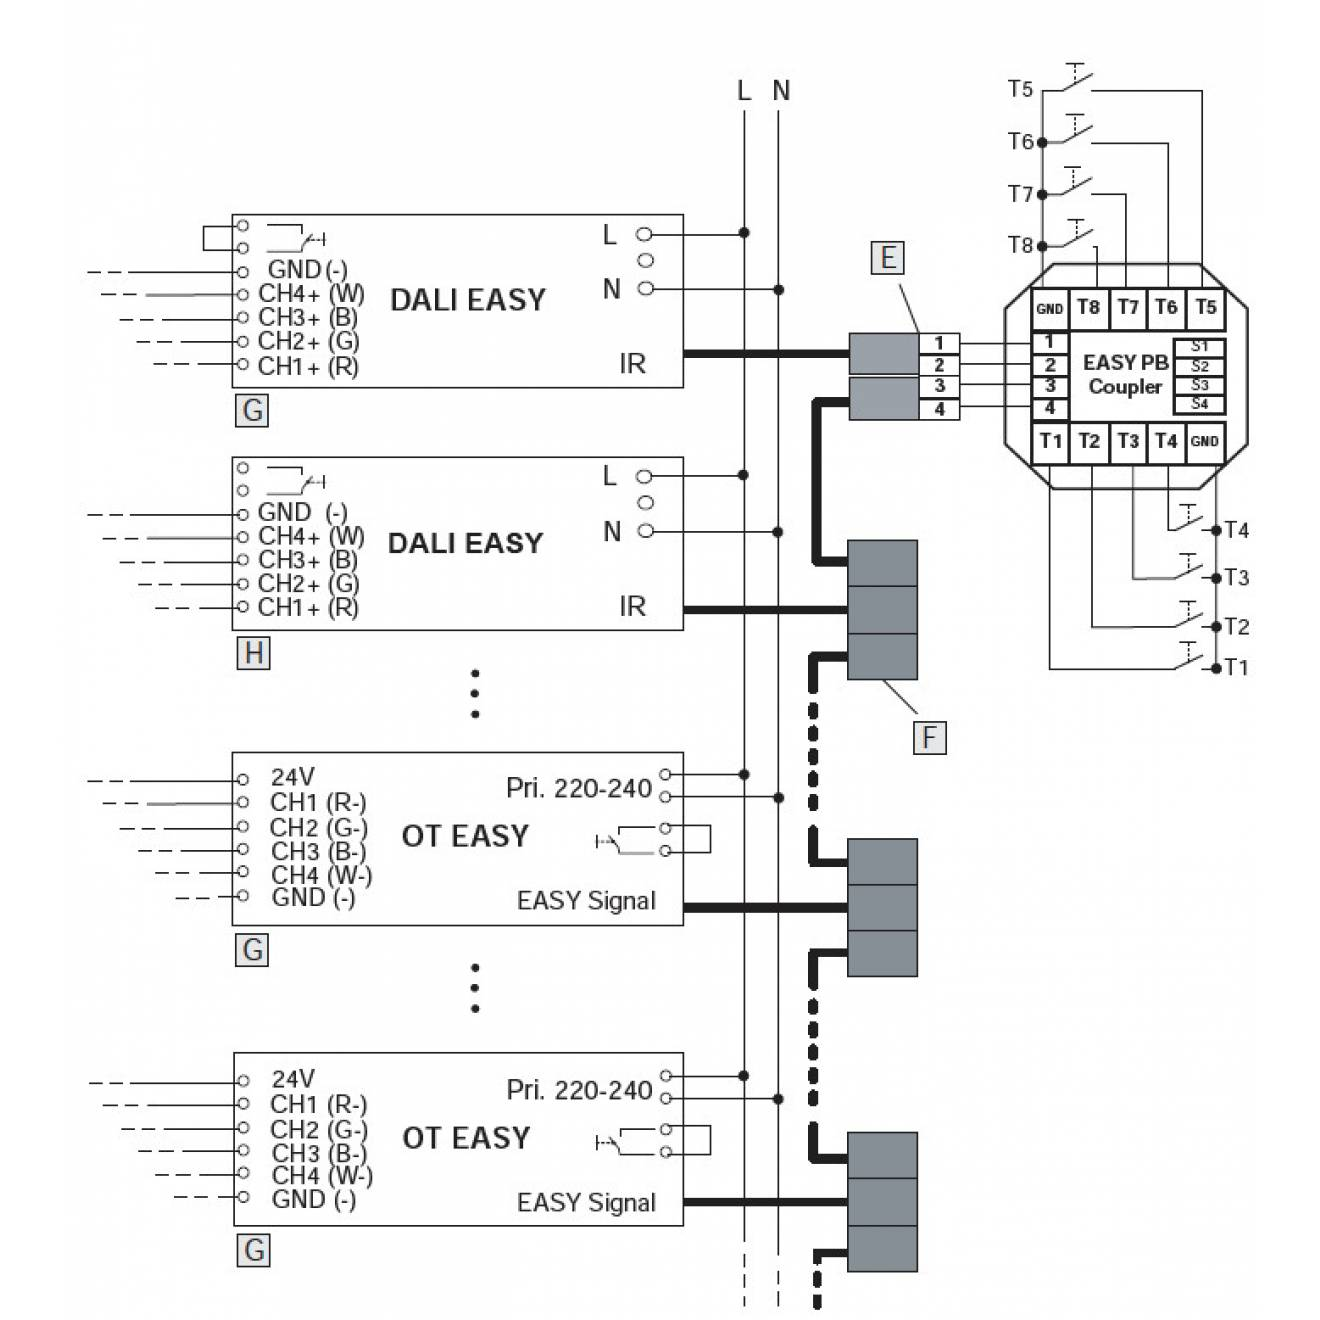 Electrical Wiring Frame also Lexus Lx470 Air Intake On Engine furthermore Wire Switch Wiring Diagram moreover Led Resistor Calculator Parallel Online moreover Schematic Symbol For Light Bulb. on plete series circuit